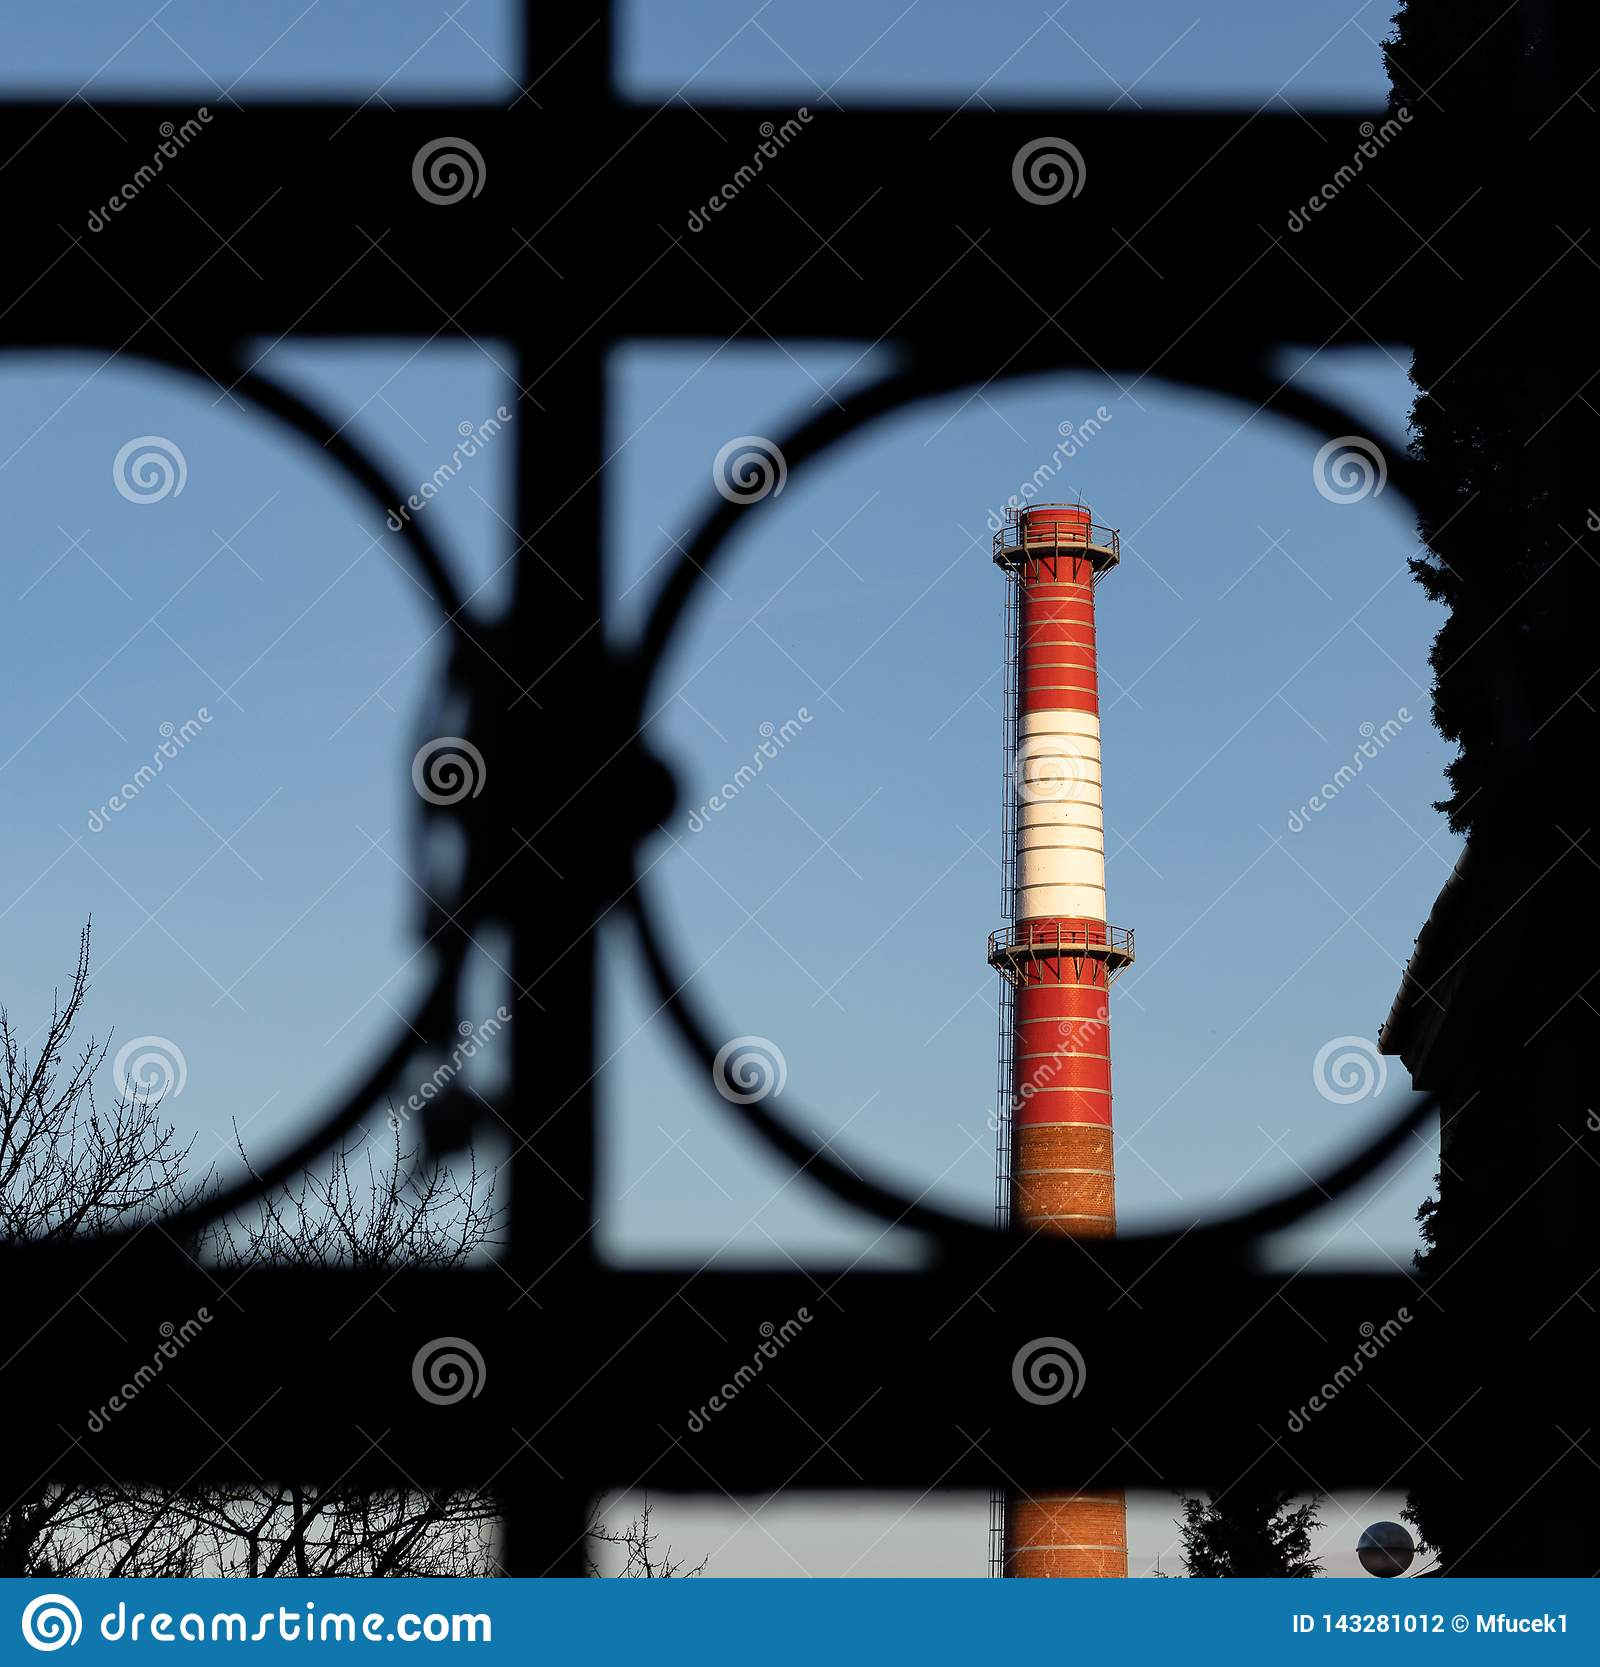 Red And White Chimney Of Power Plant Factory